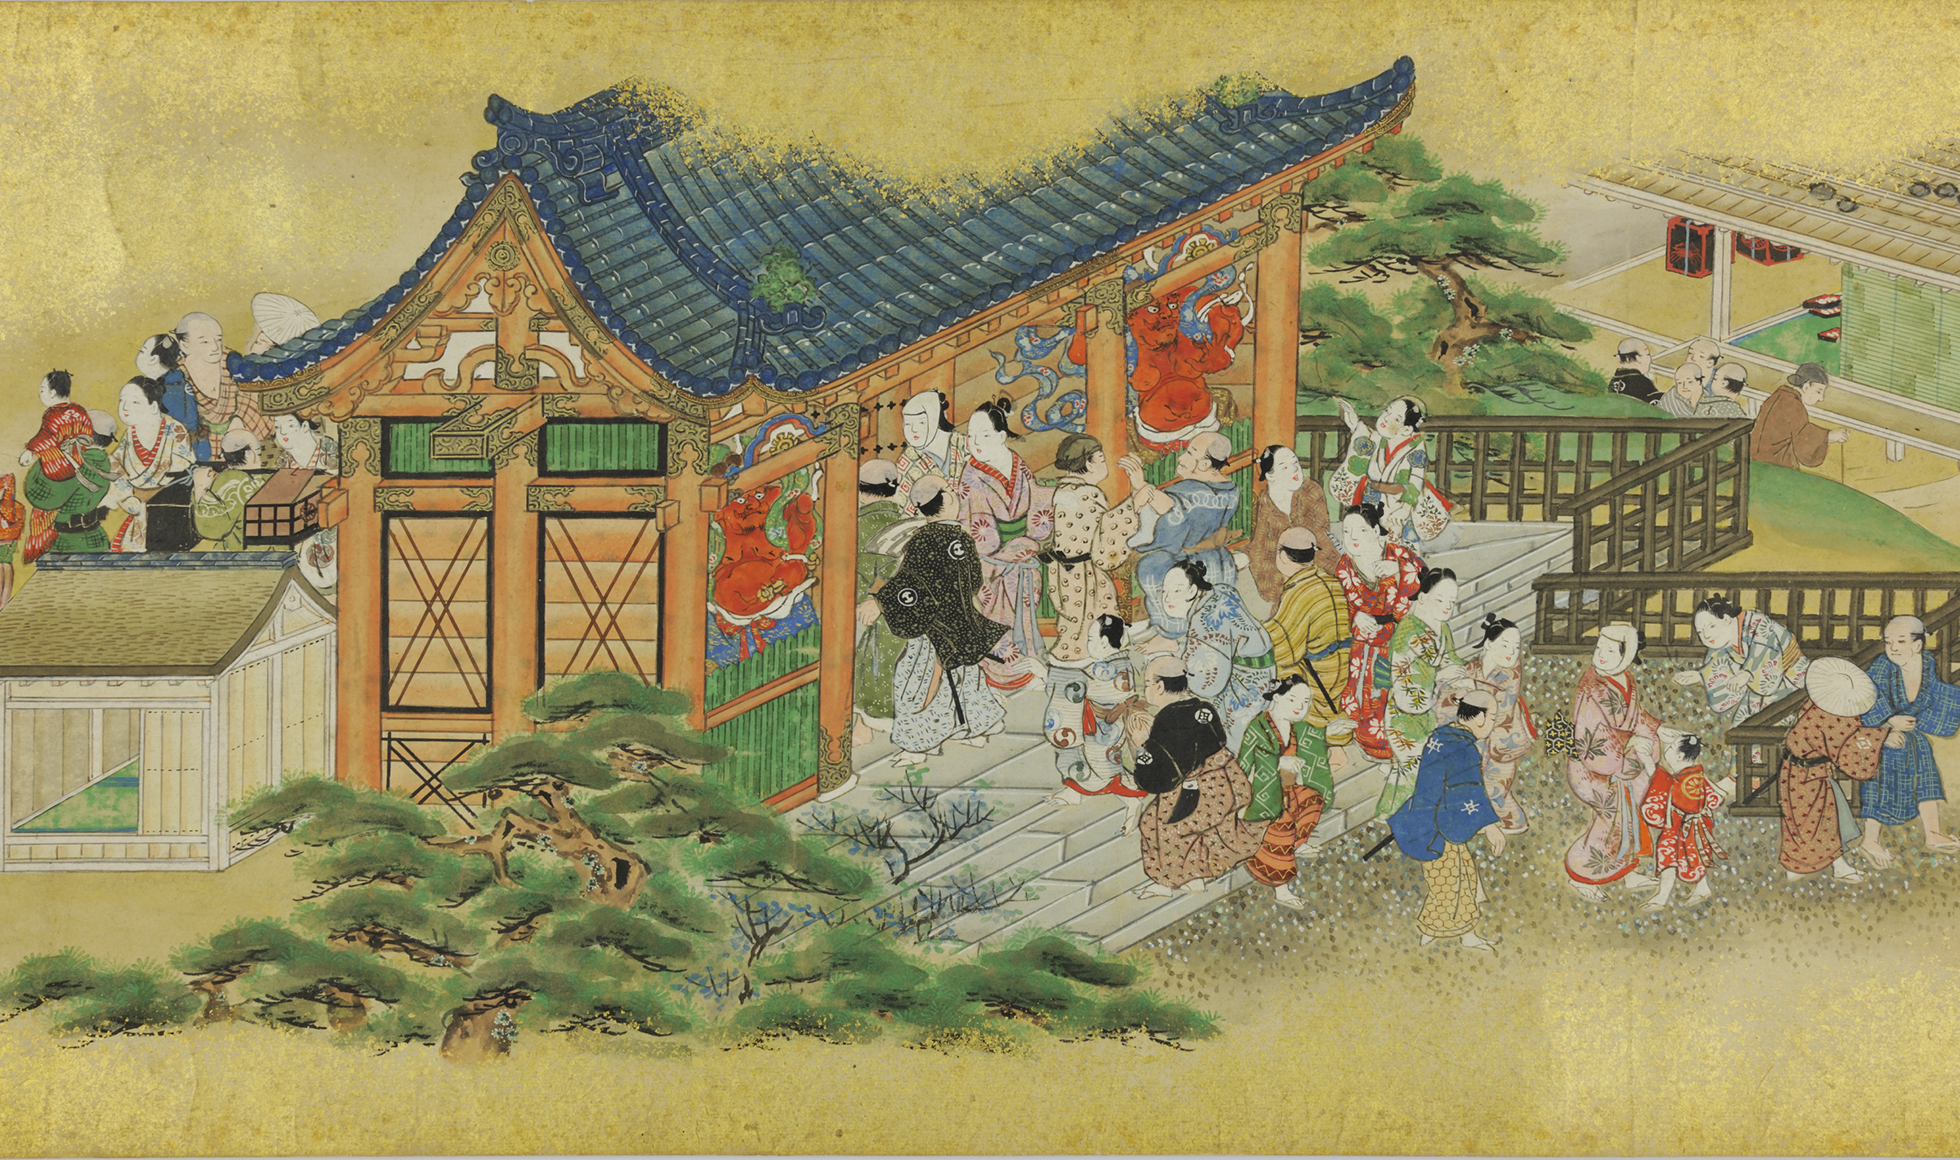 A painted handscroll depicting visitors to a shrine. A colourfully dressed group of visitors walk through a building into the gardens behind.